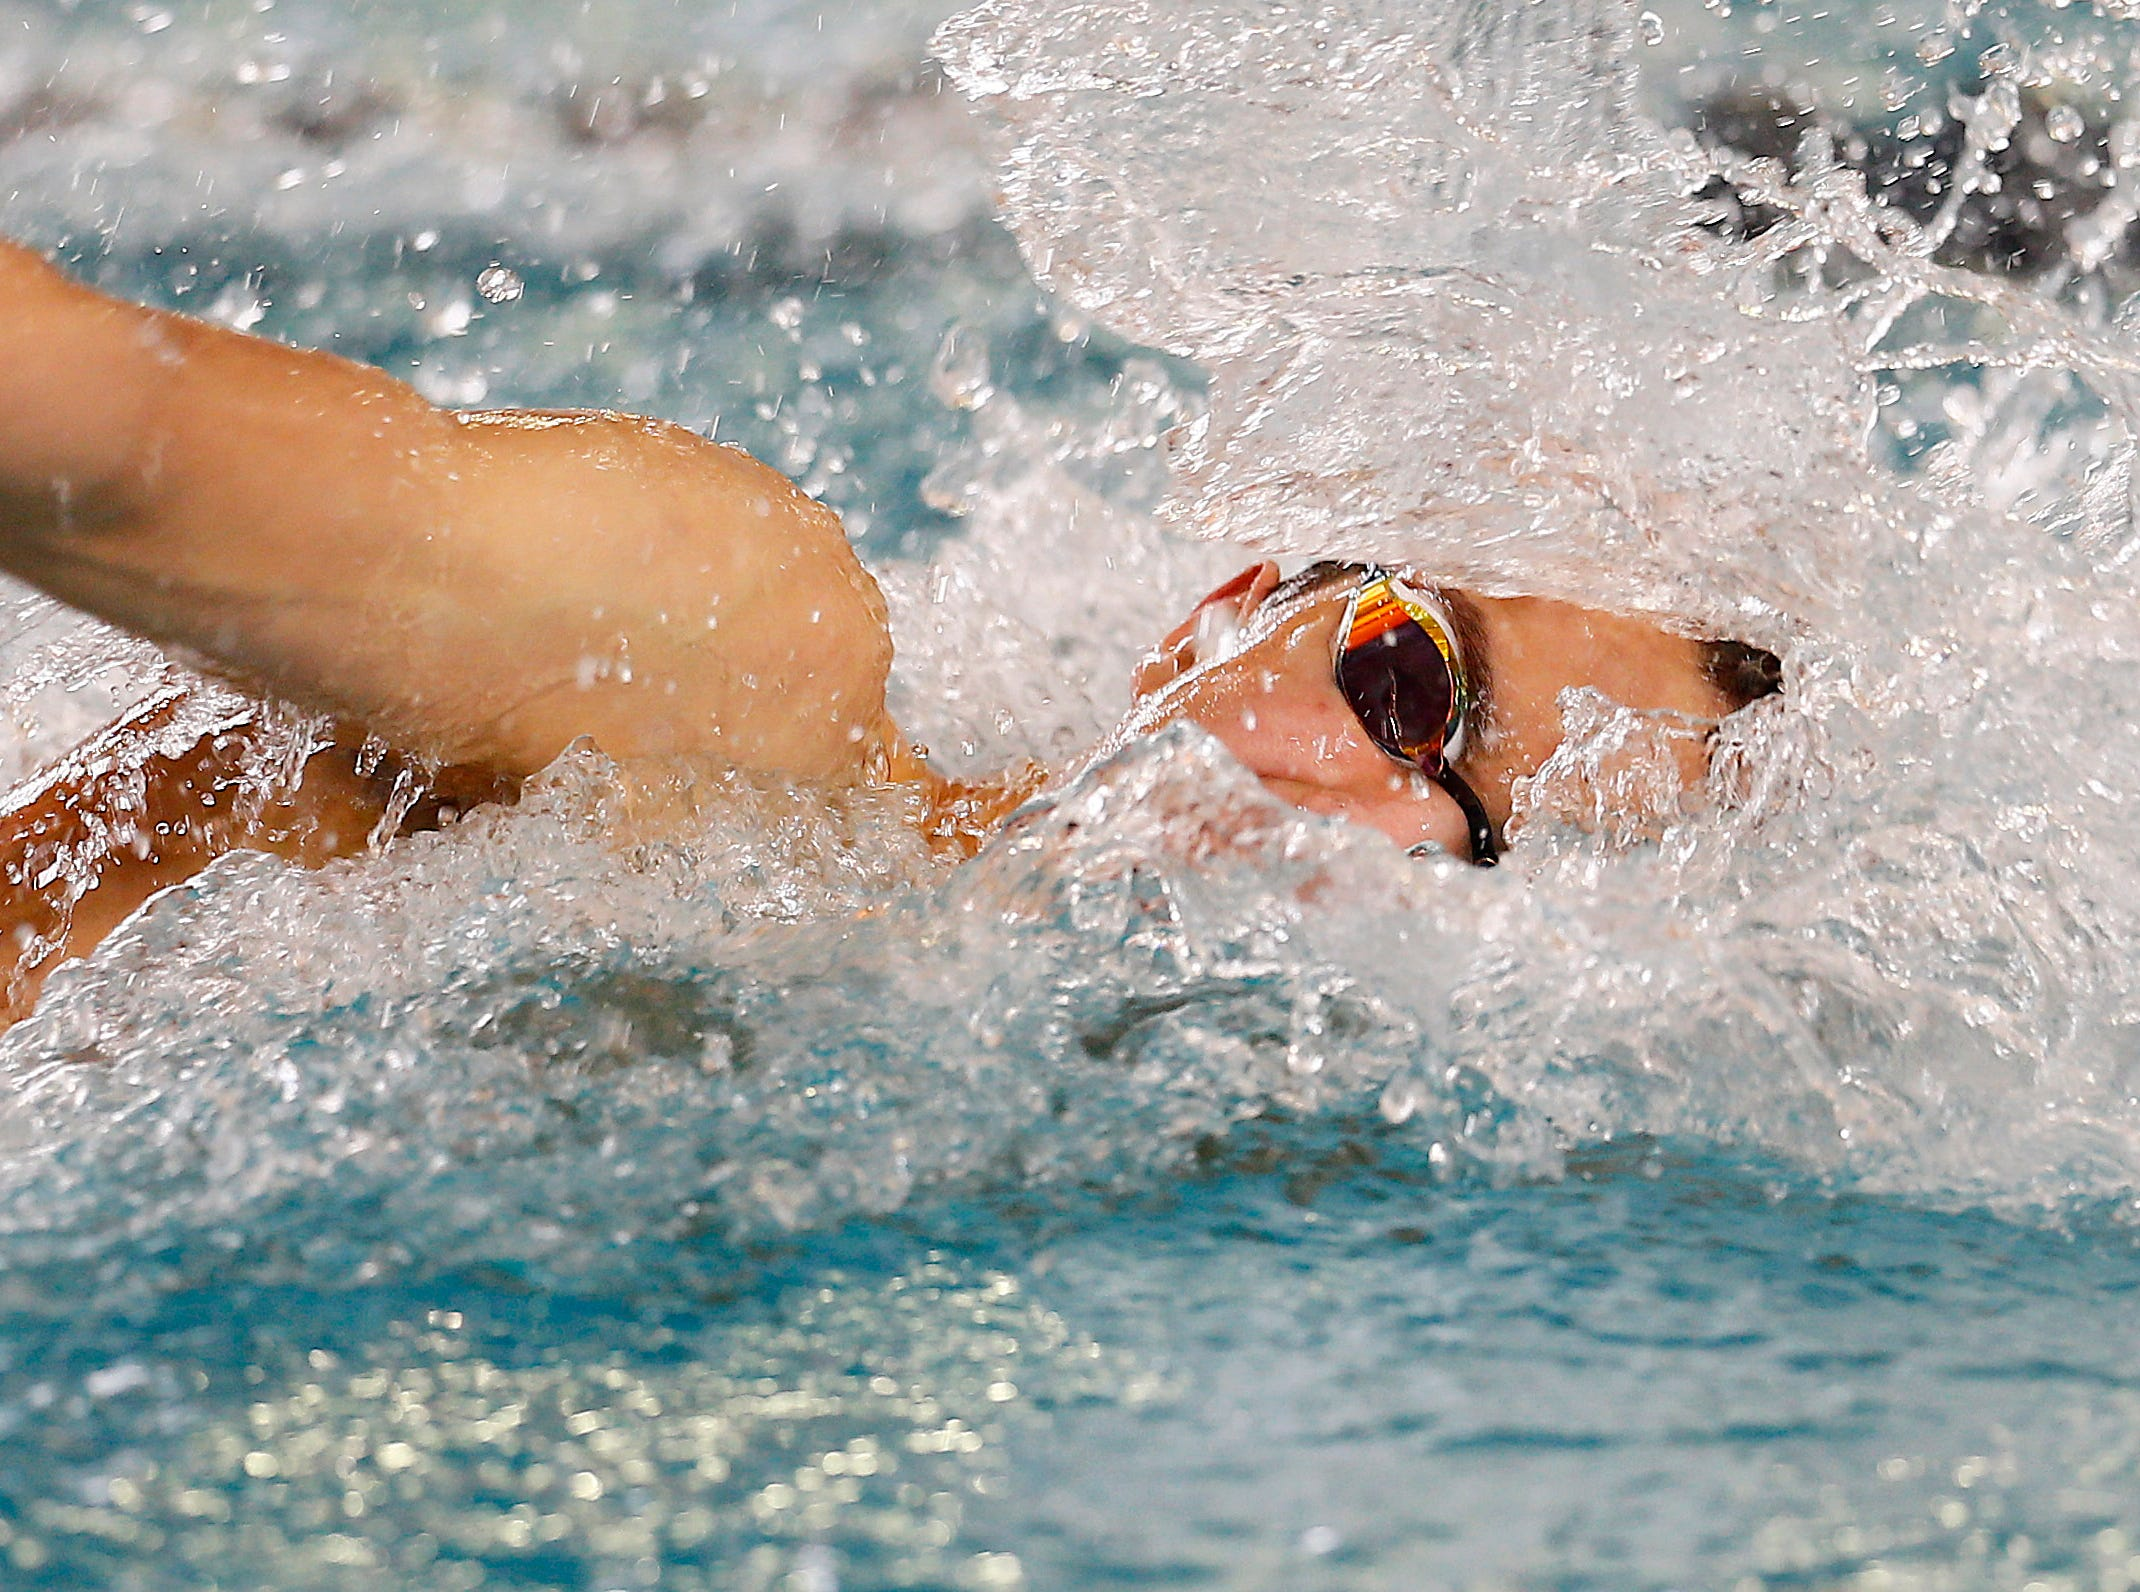 Bridgewater Raritan's Trent Russano swims the freestyle during the boys 200 yard medley relay at the NJSIAA swimming Meet of Champions at the Gloucester County Institute of Technology. March 3, 2018. Sewell, NJ.